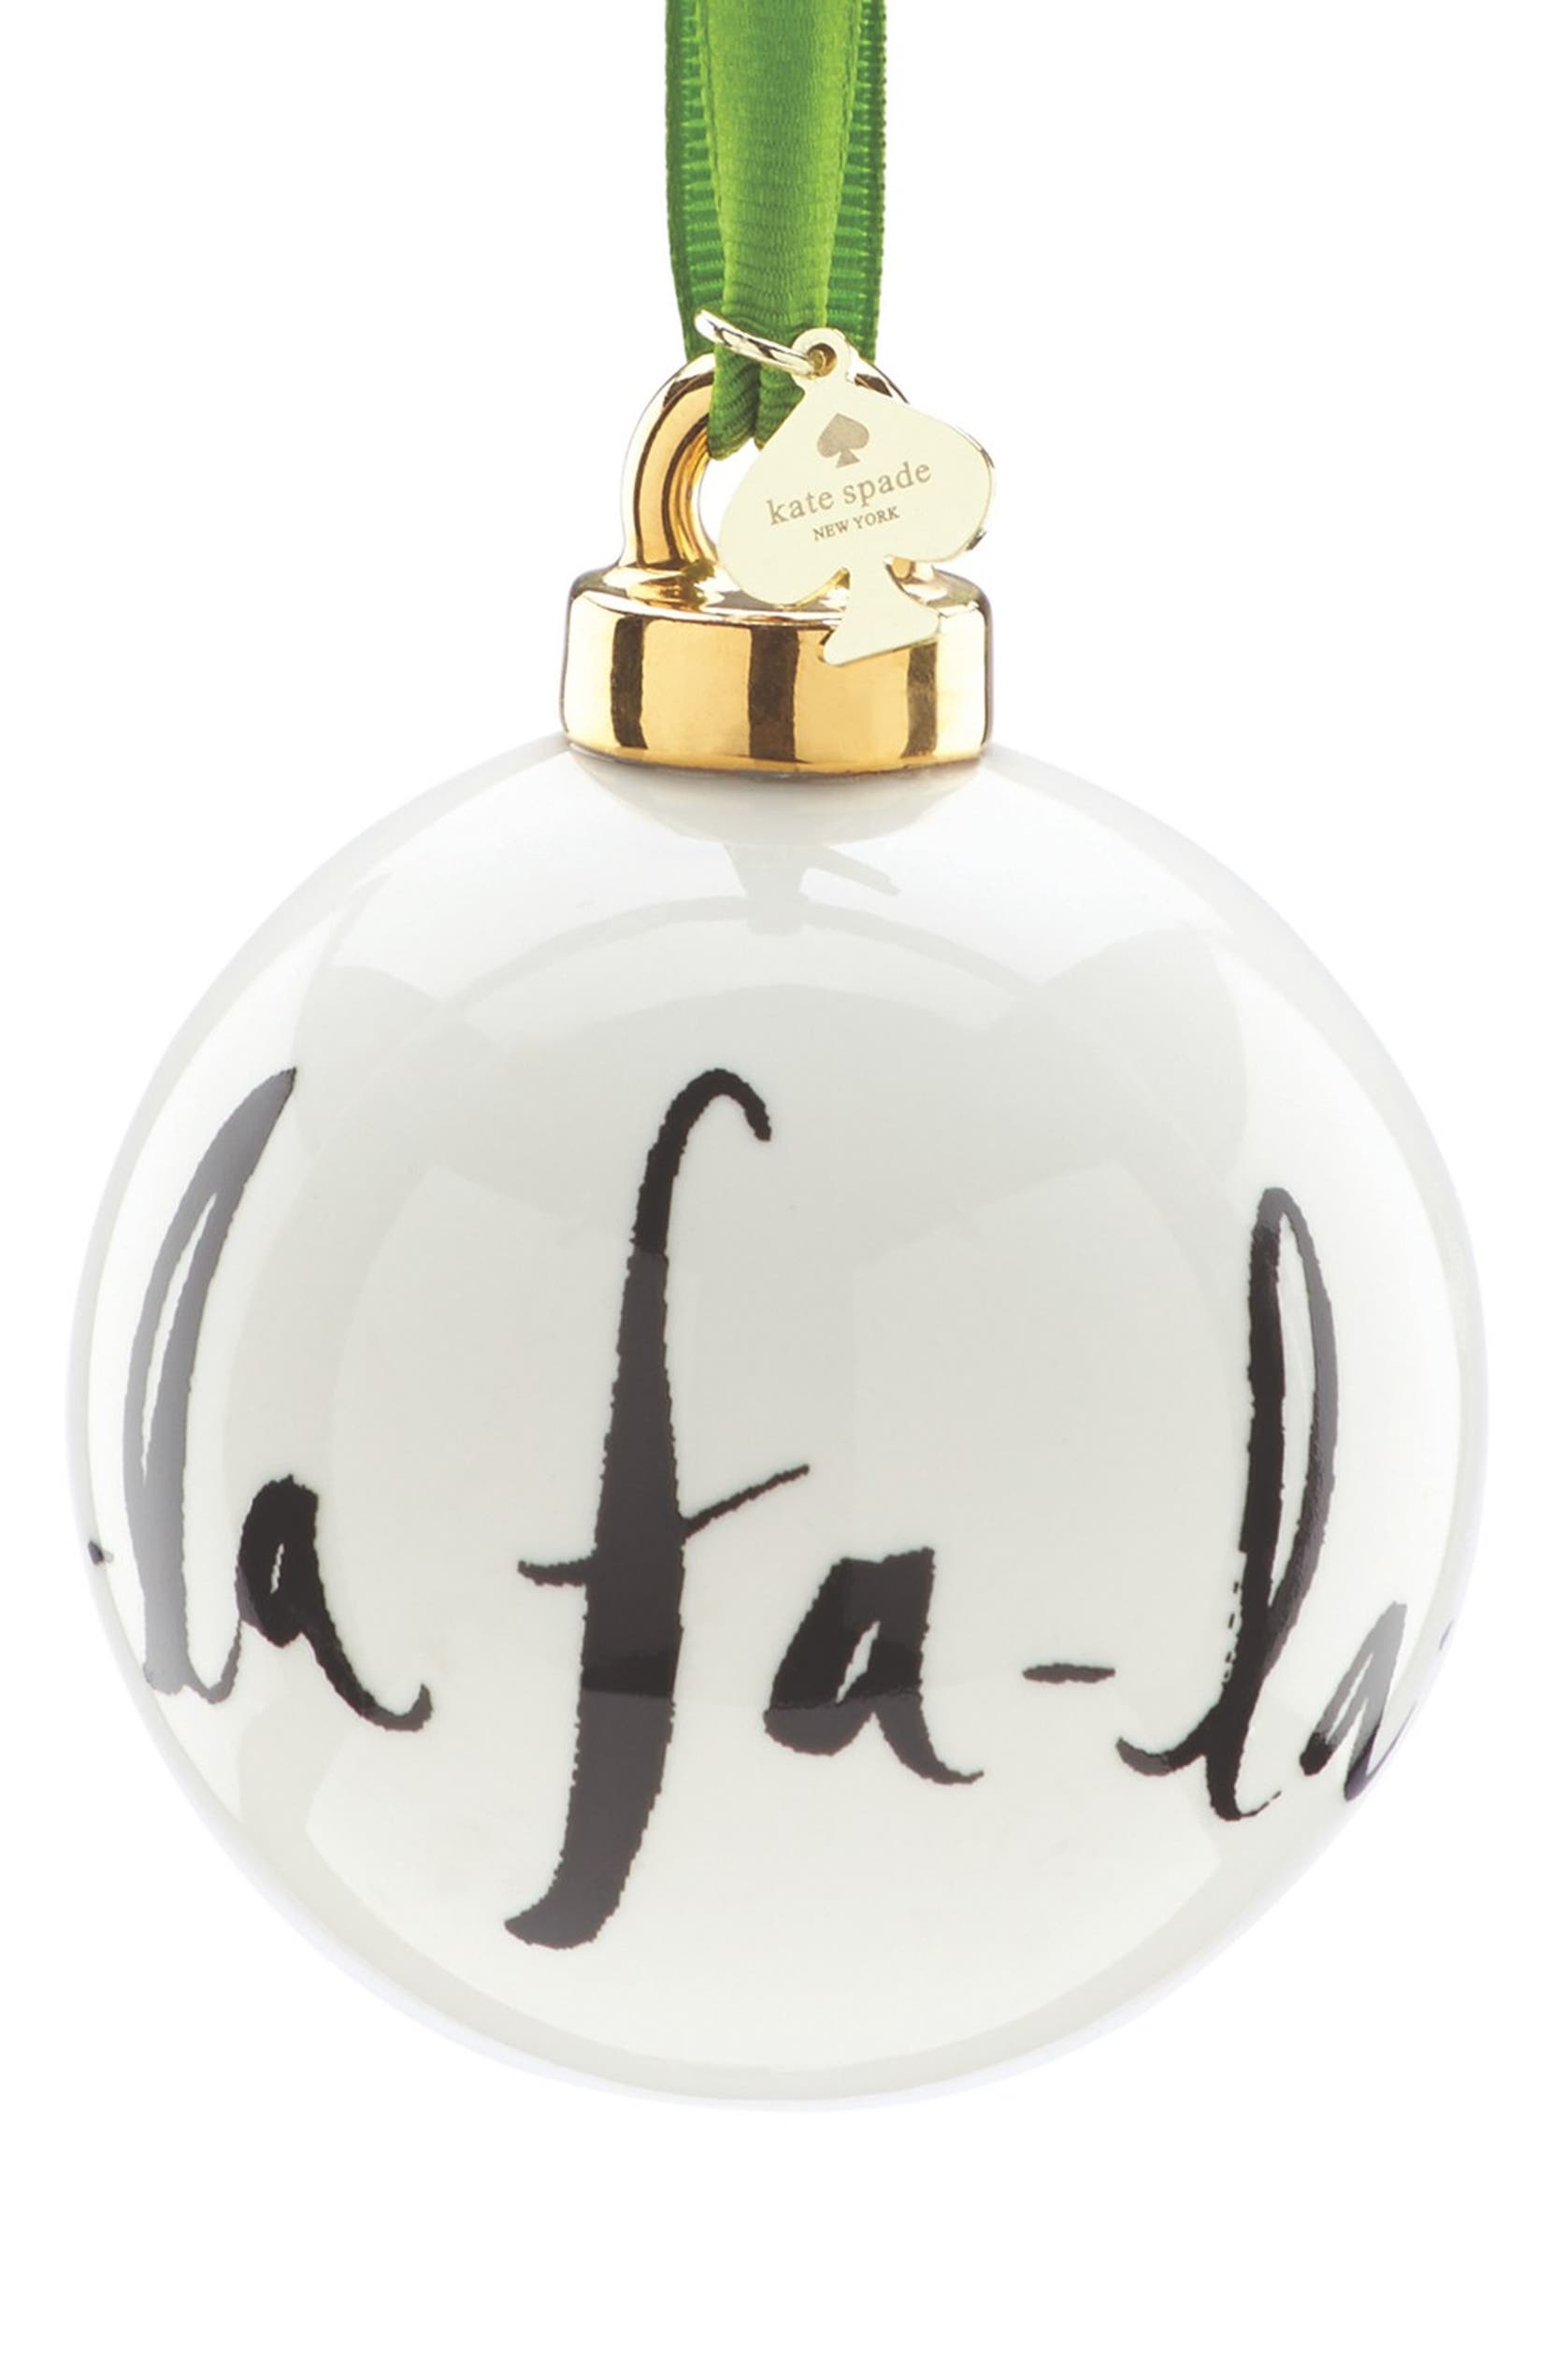 kate spade new york \'fa-la-la\' globe ornament | Nordstrom